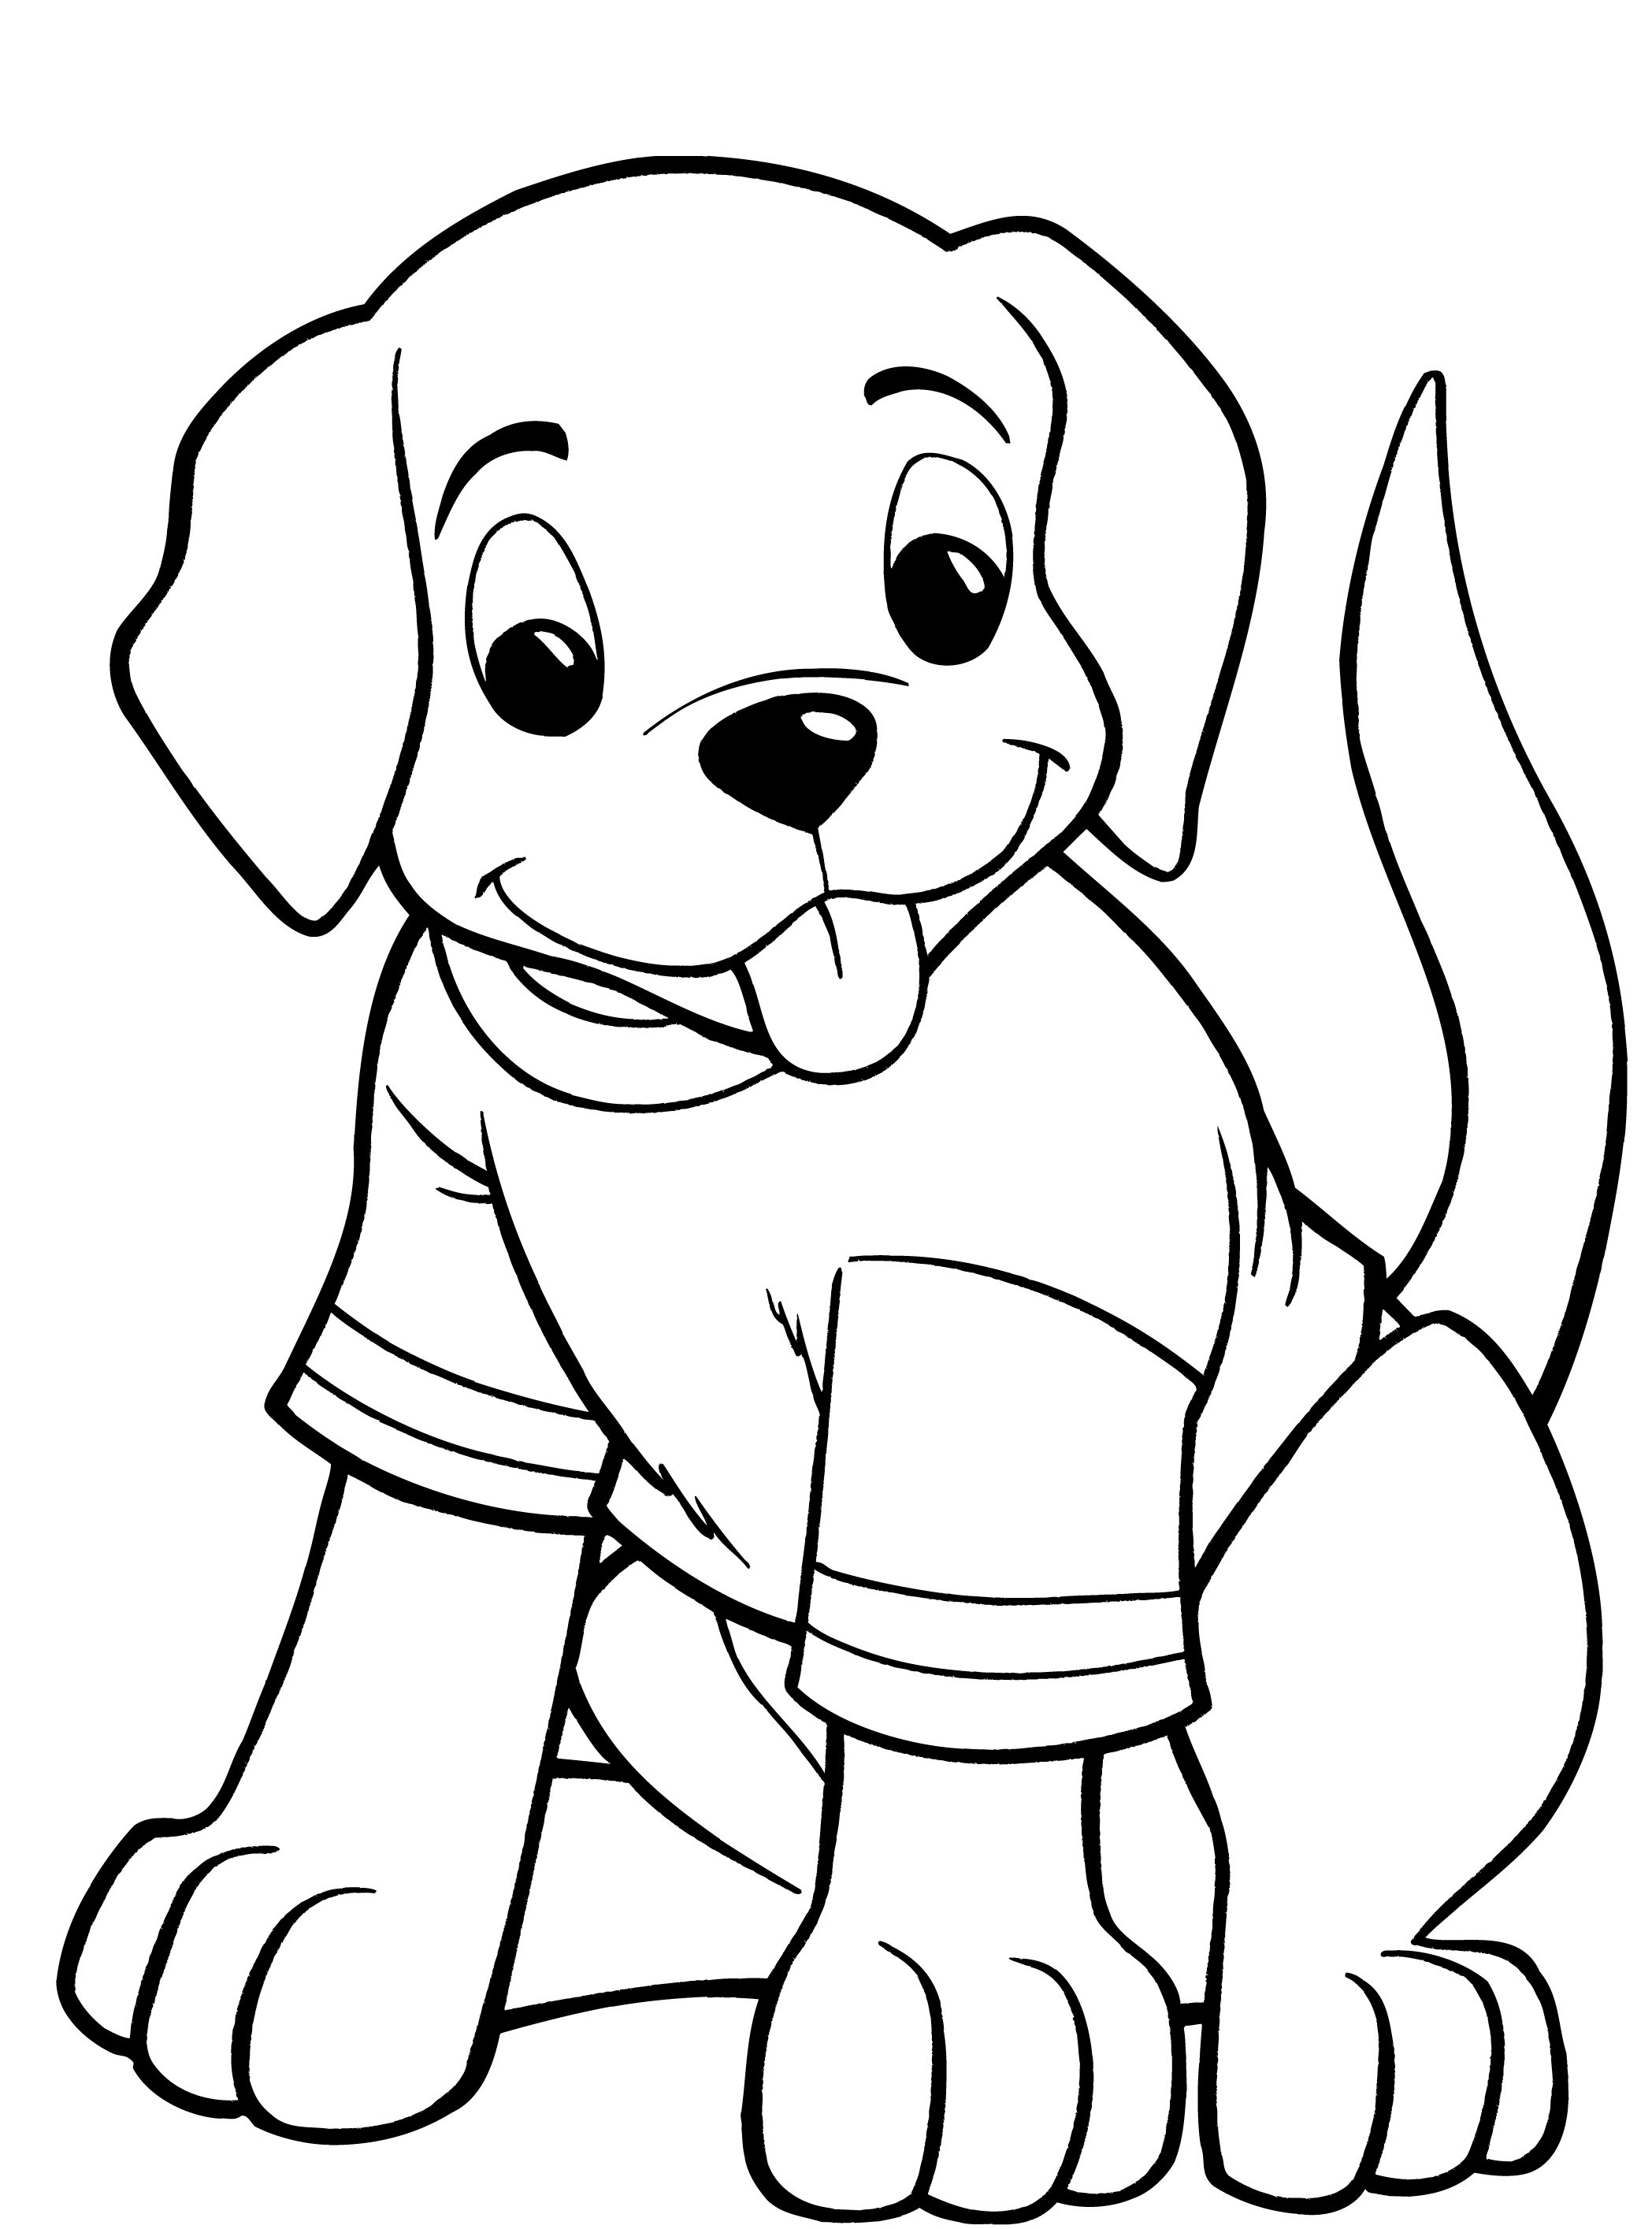 Cartoon Puppy Coloring Pages at GetDrawings | Free download